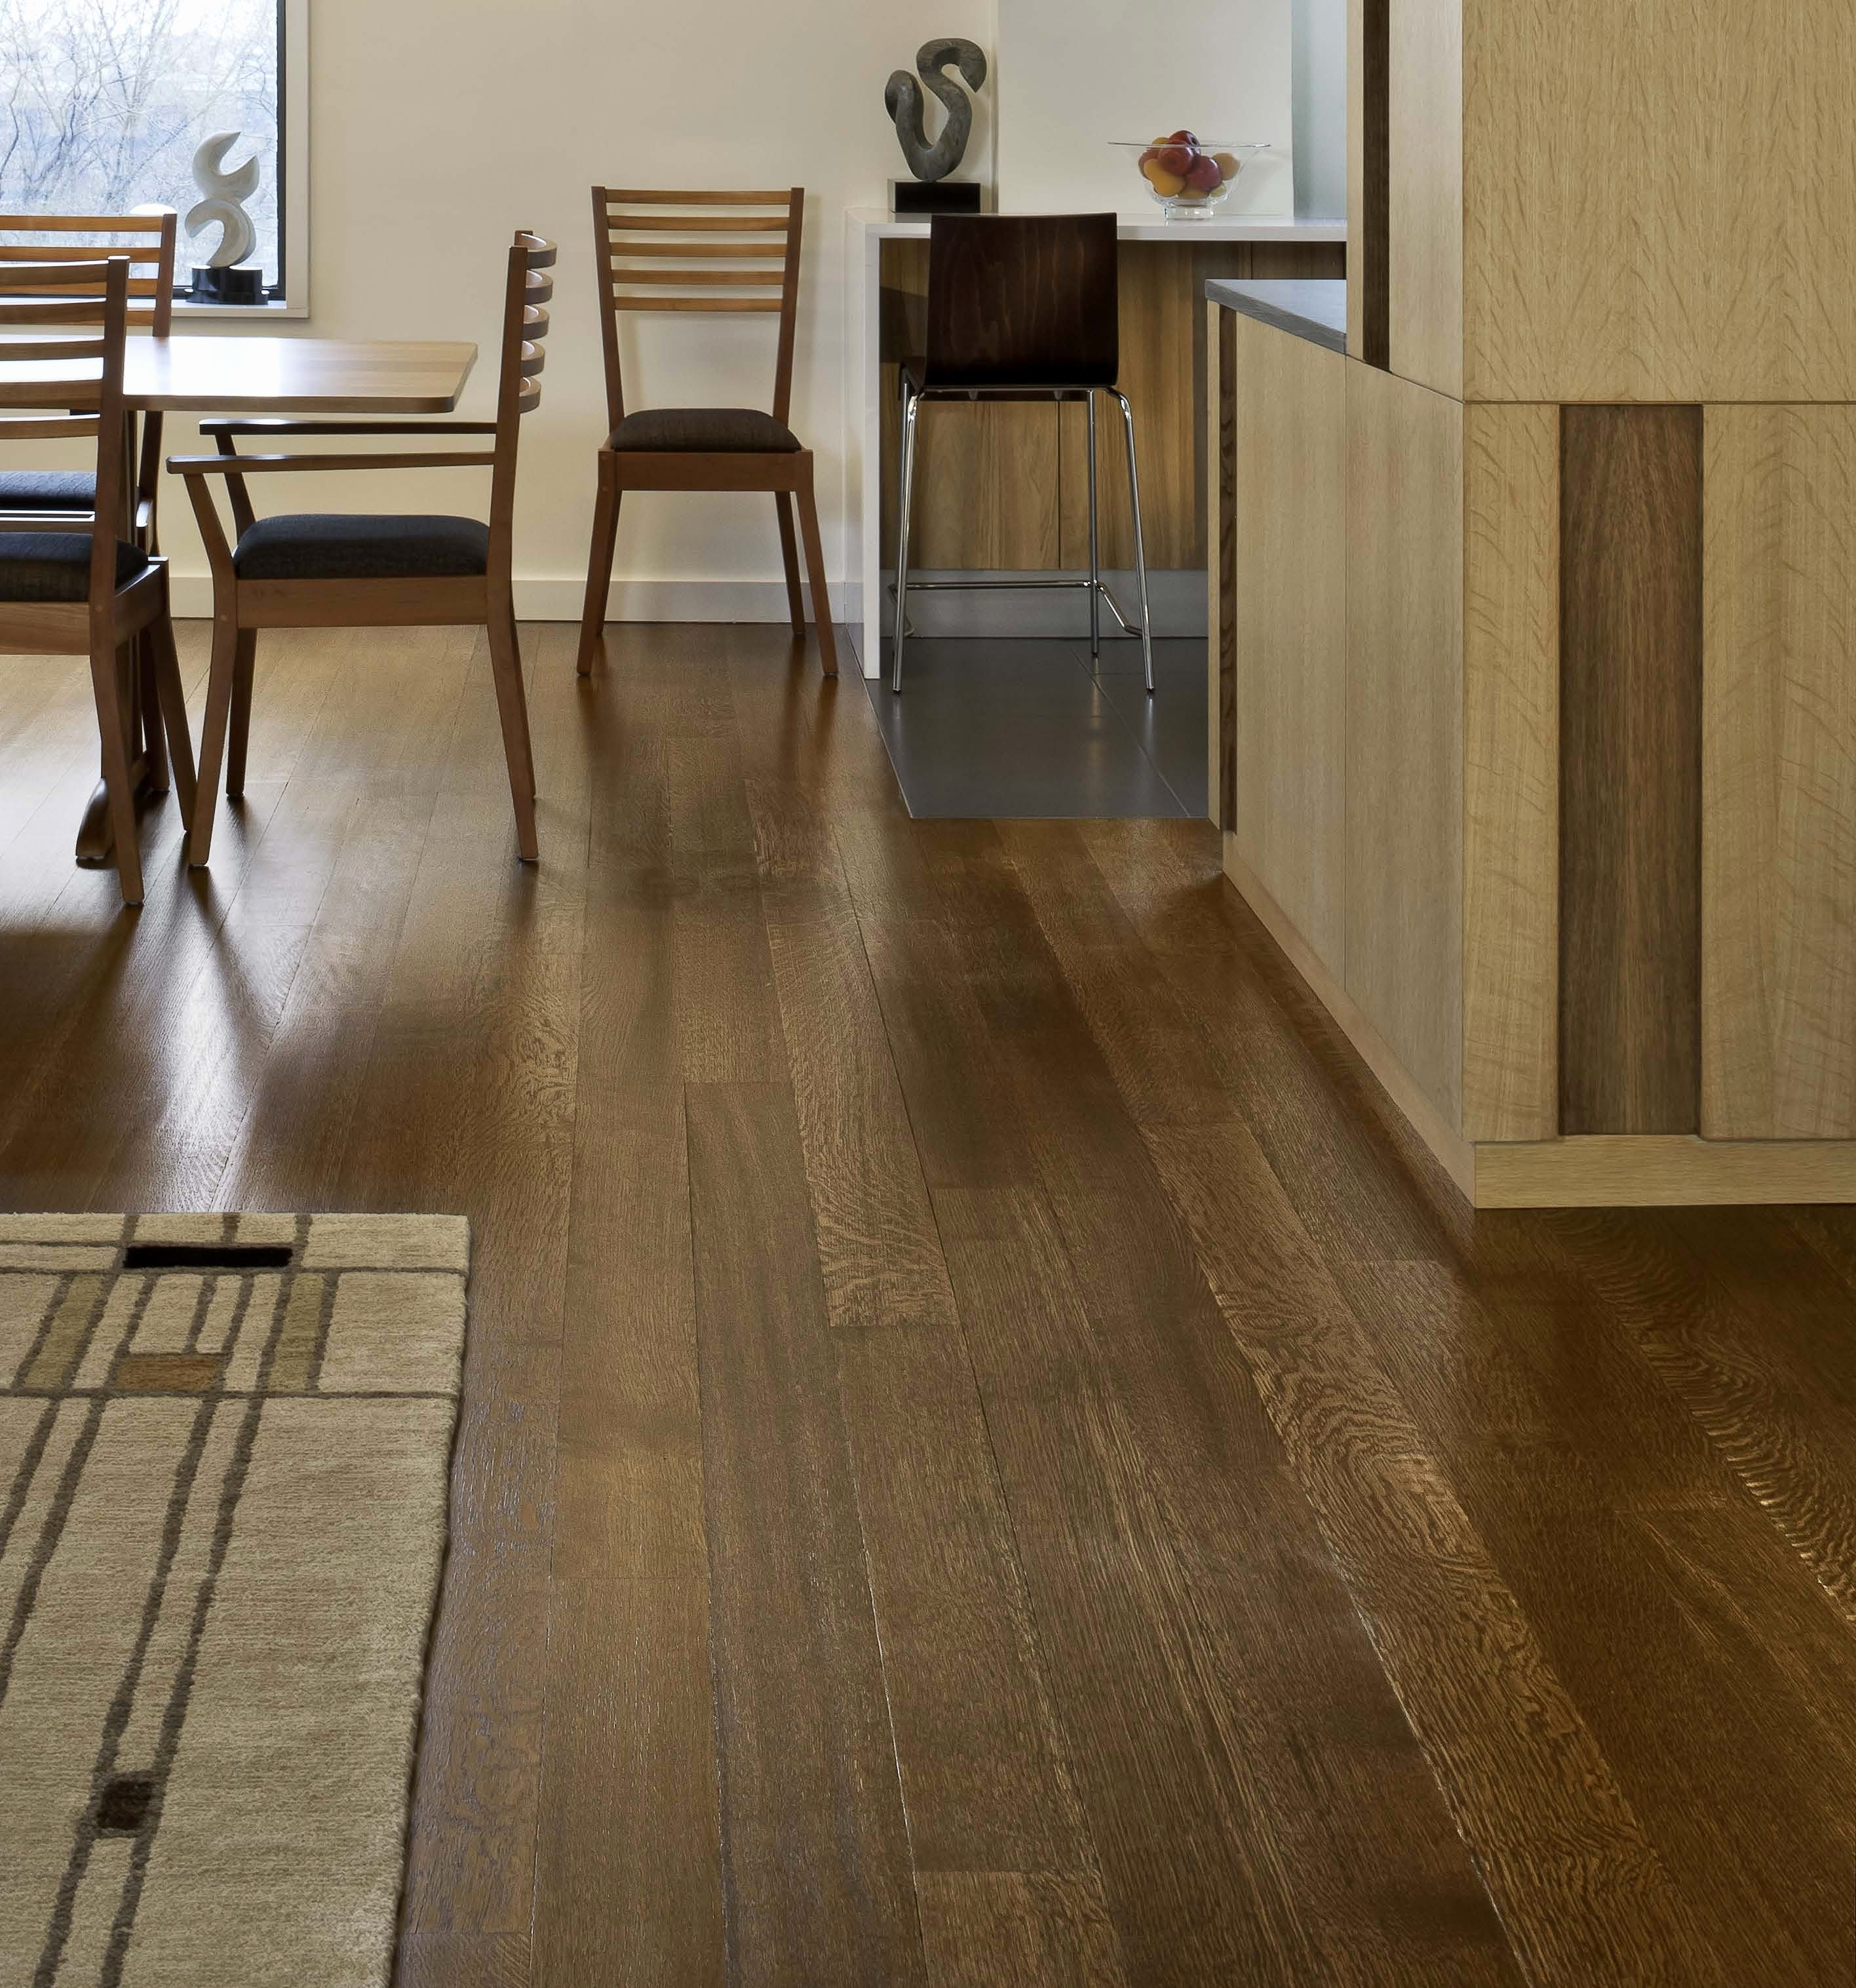 is hardwood floors in kitchen a good idea of white kitchens with dark wood floors greatest engaging discount inside white kitchens with dark wood floors greatest engaging discount hardwood flooring 5 where to buy inspirational